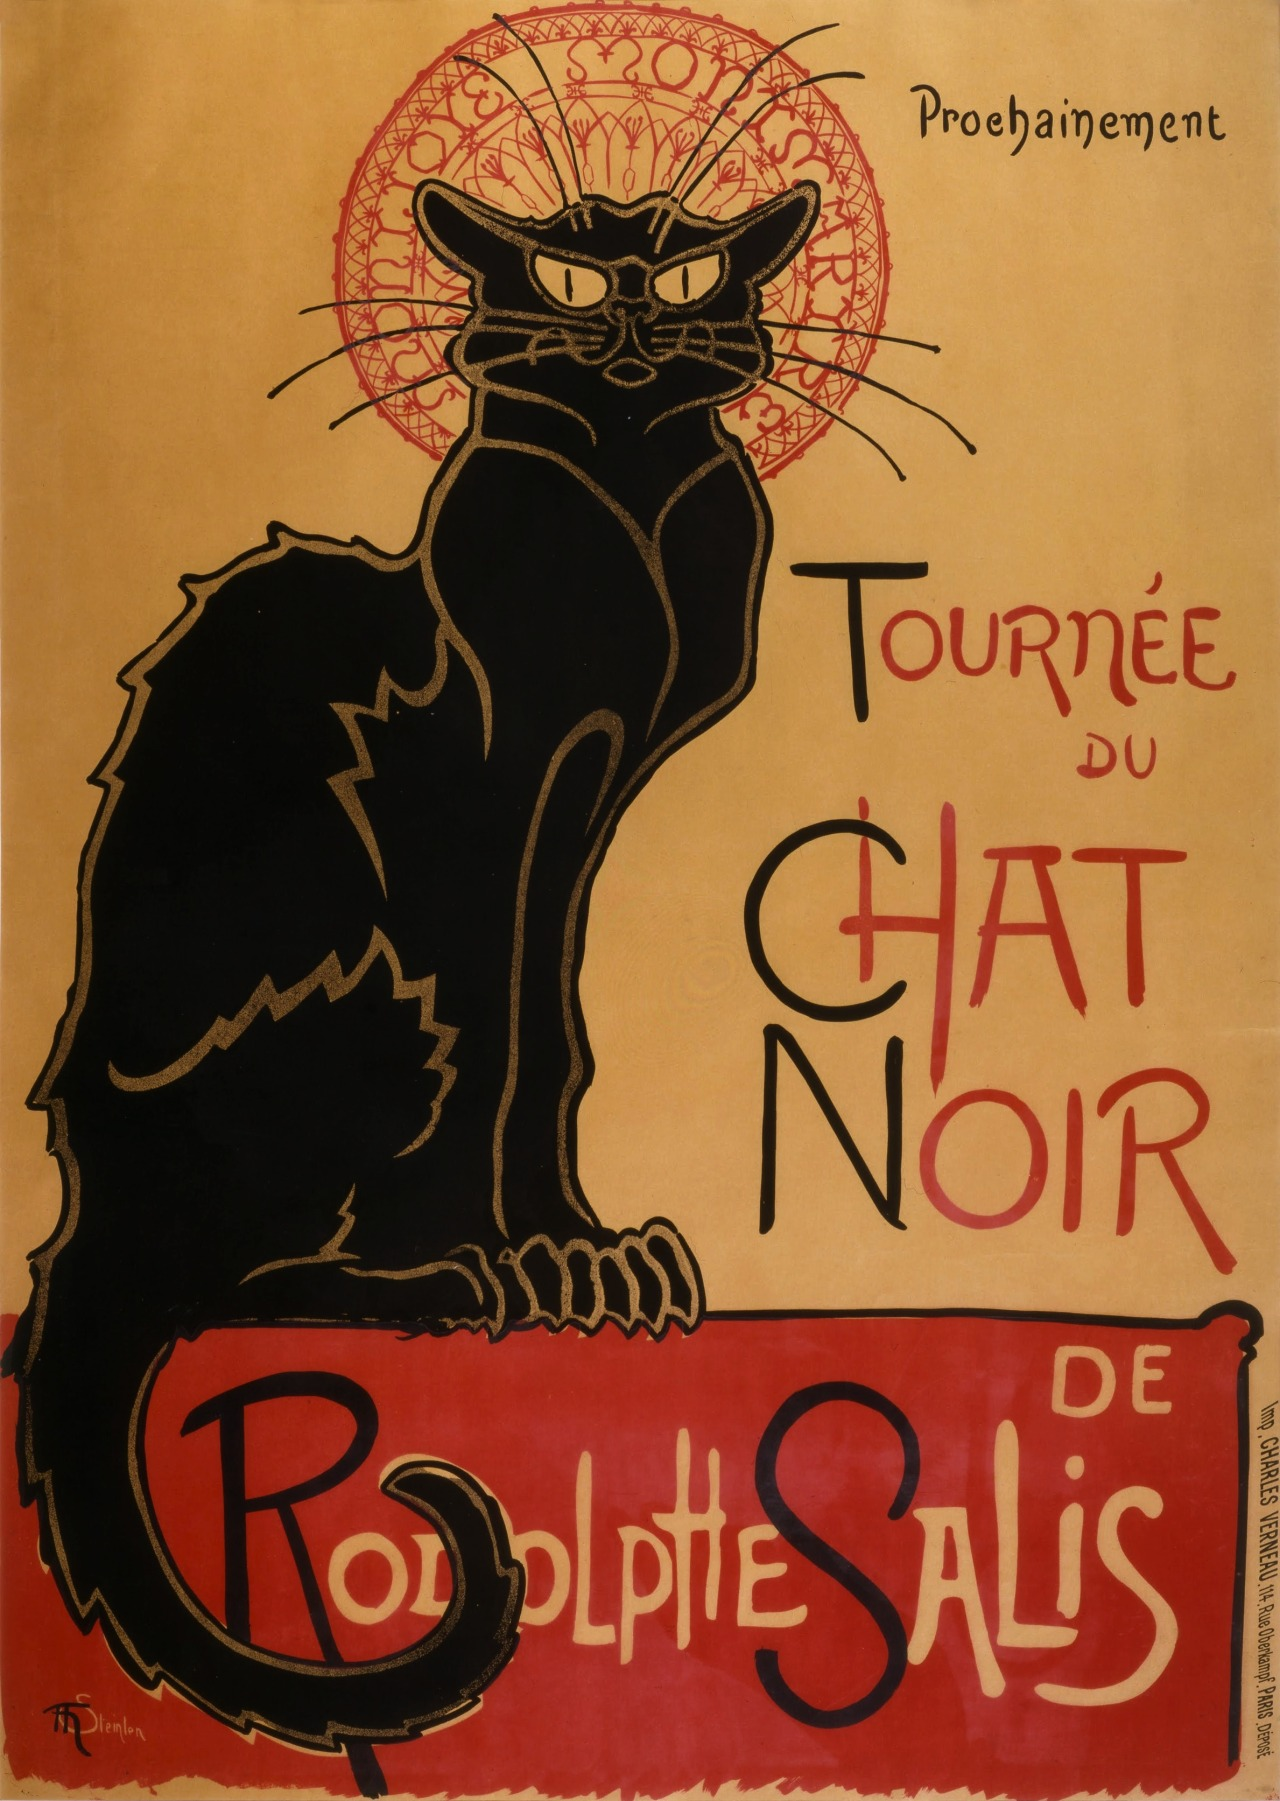 Debbonique Brown-Murray    Le Chat Noir    19th century France (1896)   The mildly angry looking cat is kind of creepy, but hypnotizing at the same time.   This was an advertisement for a cabaret in France. The image and classic text go hand in hand.